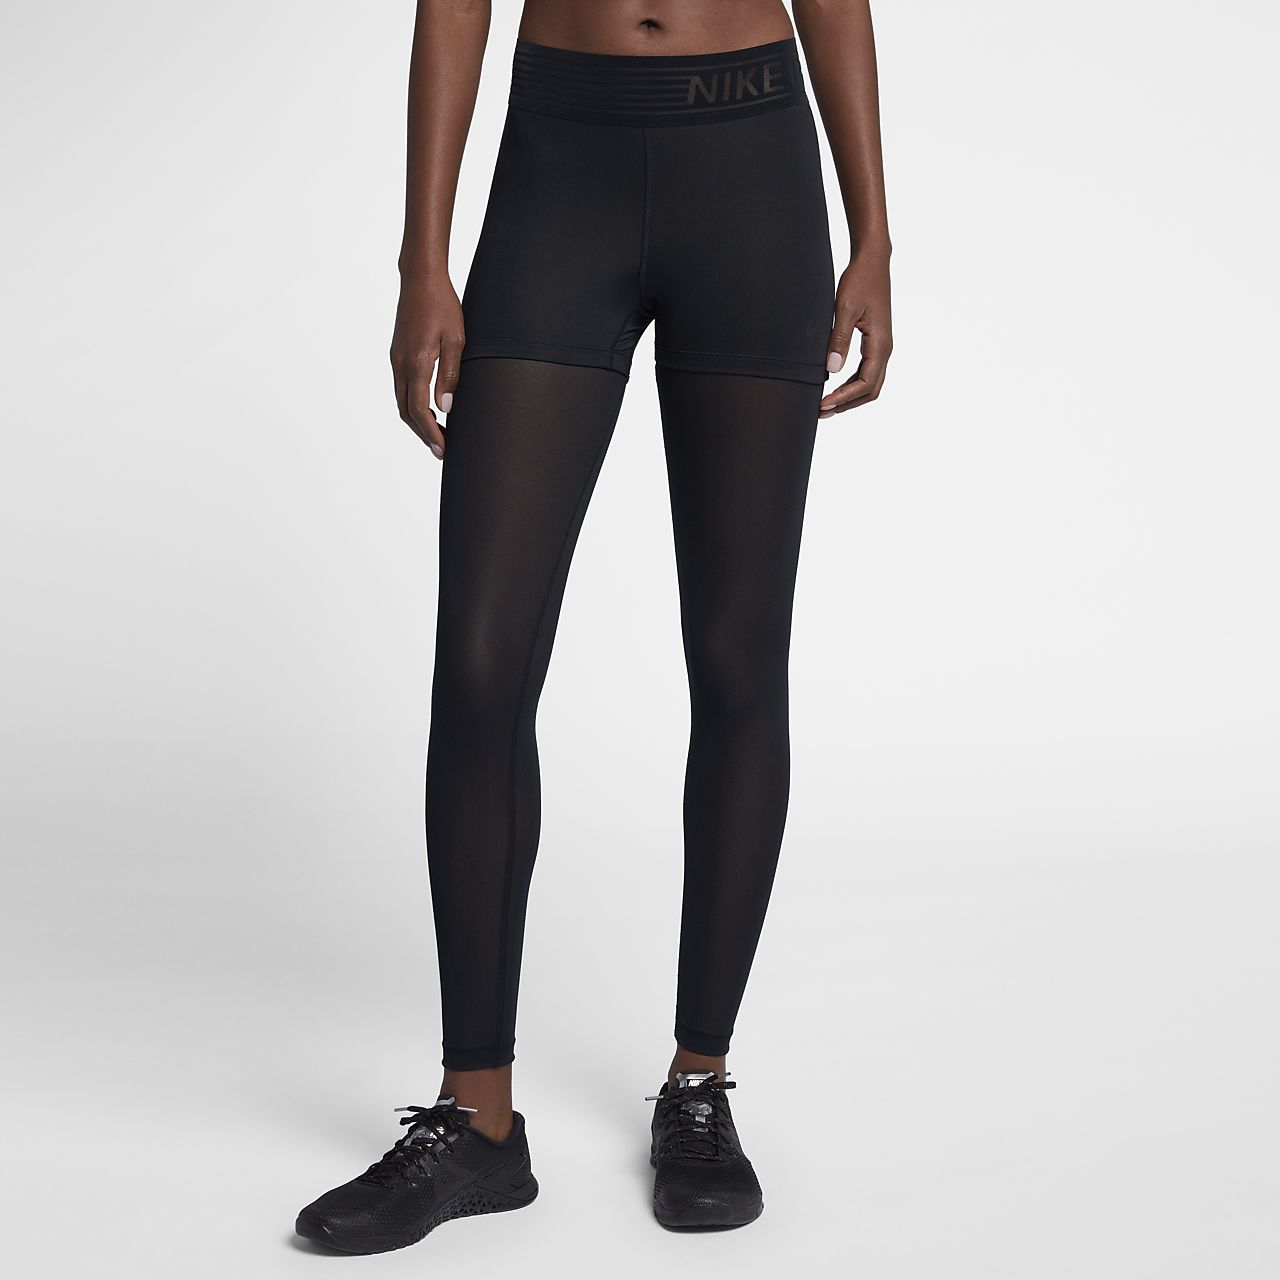 d166d887ec Nike Pro Deluxe Women s Mid-Rise Training Tights. Nike.com GB